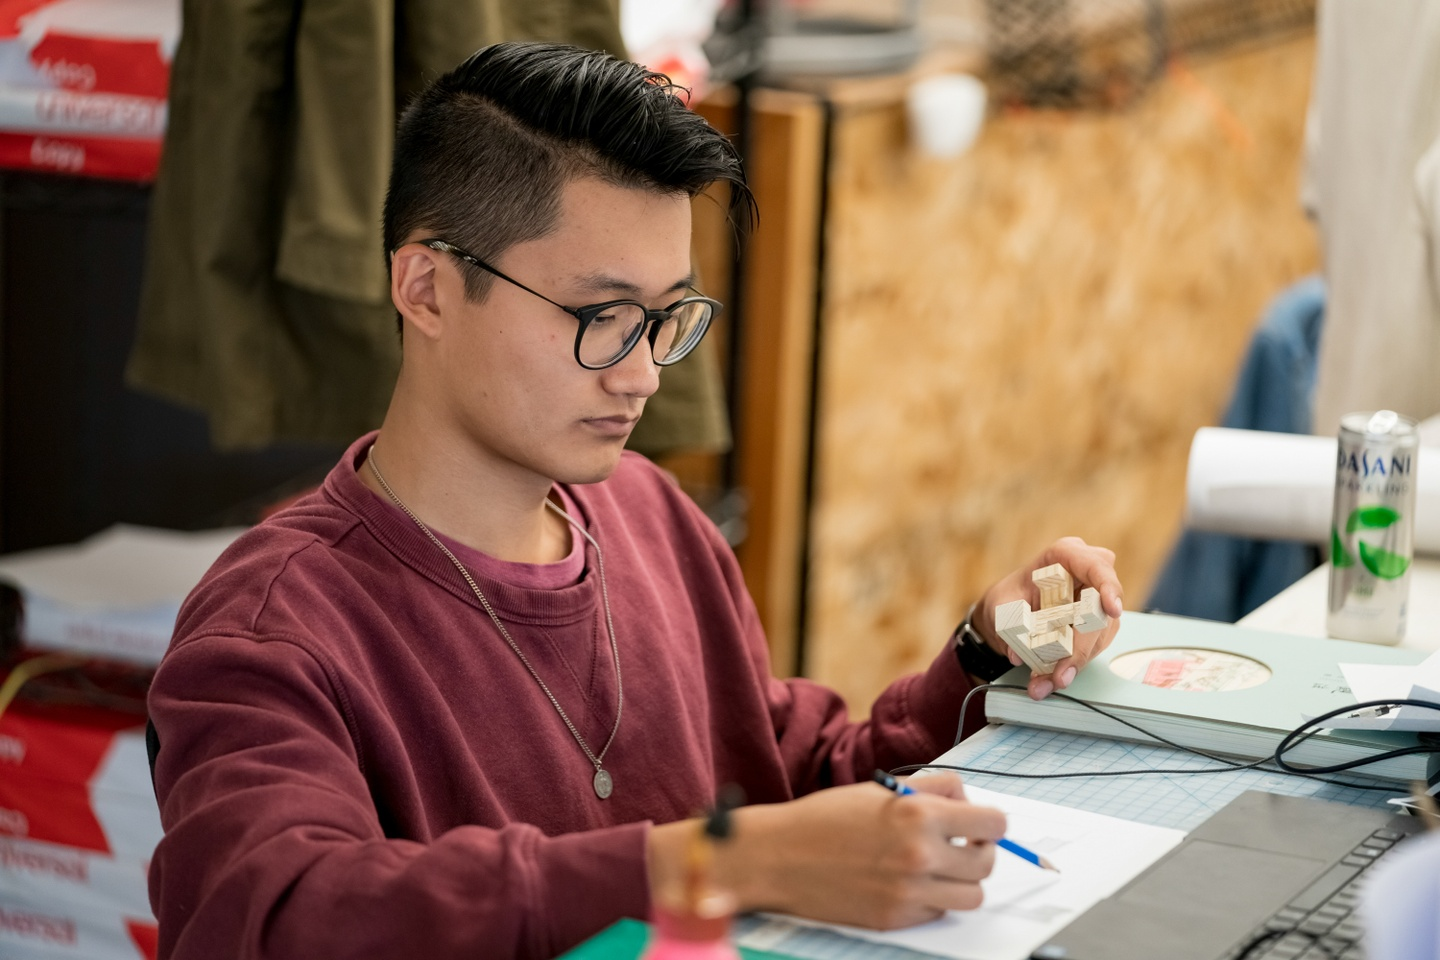 Person sitting at a desk holds a small wooden model in one hand and sketches something with the other.